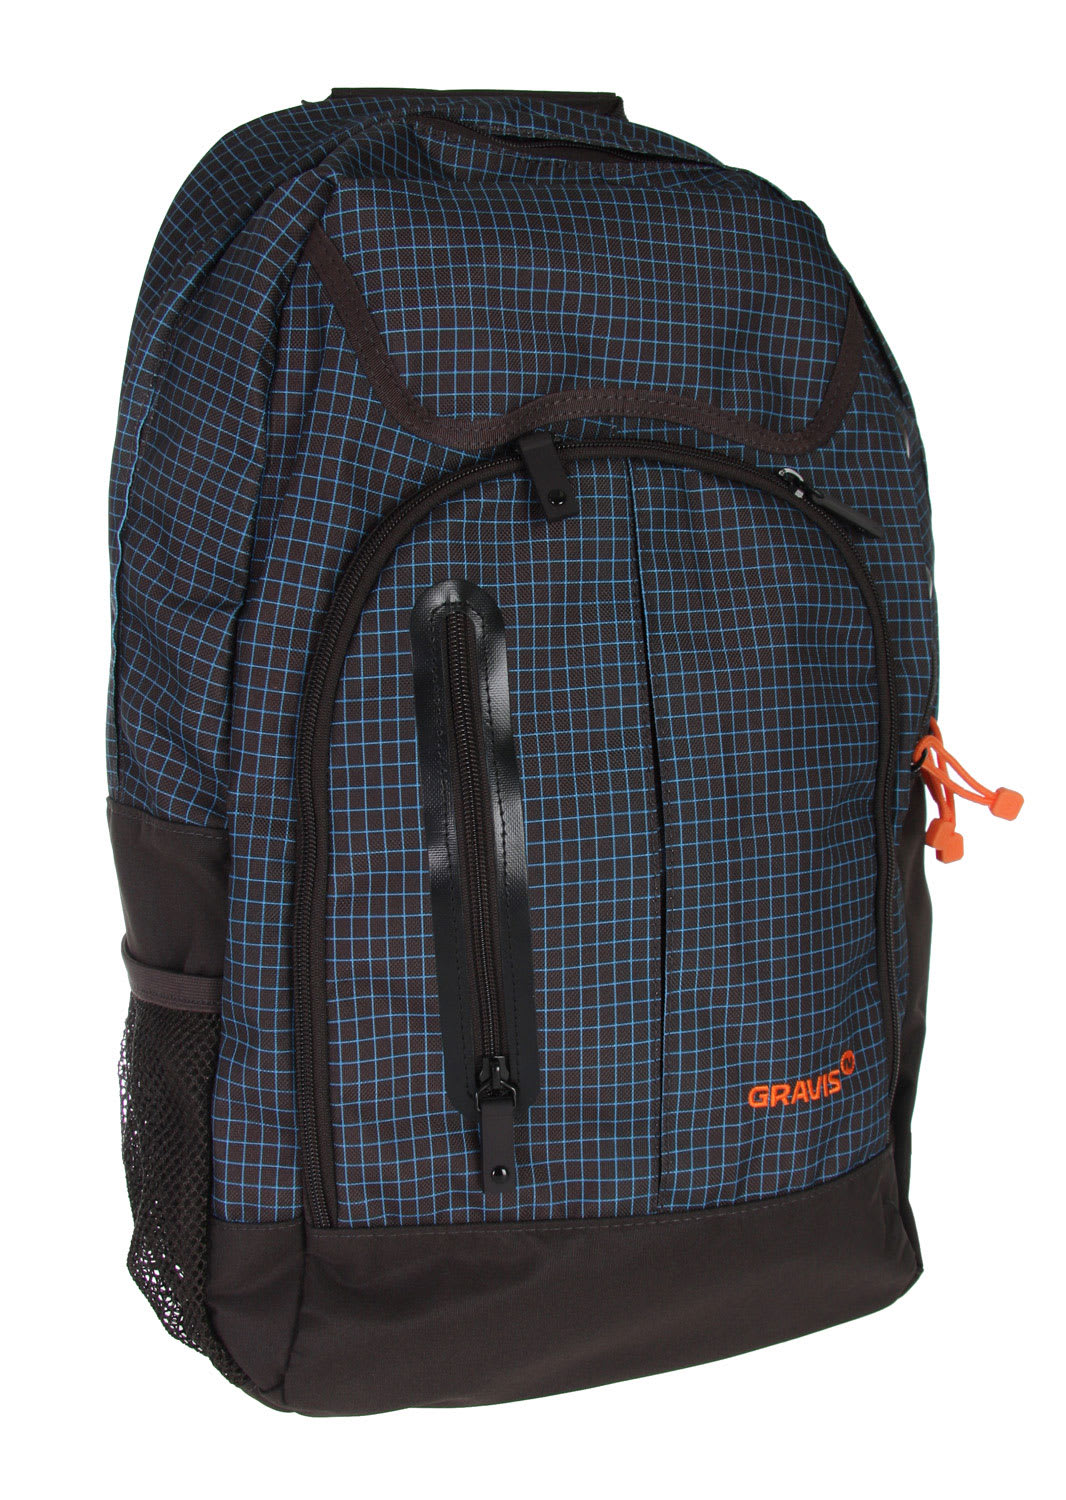 Gravis Sureshot Backpack Expedition